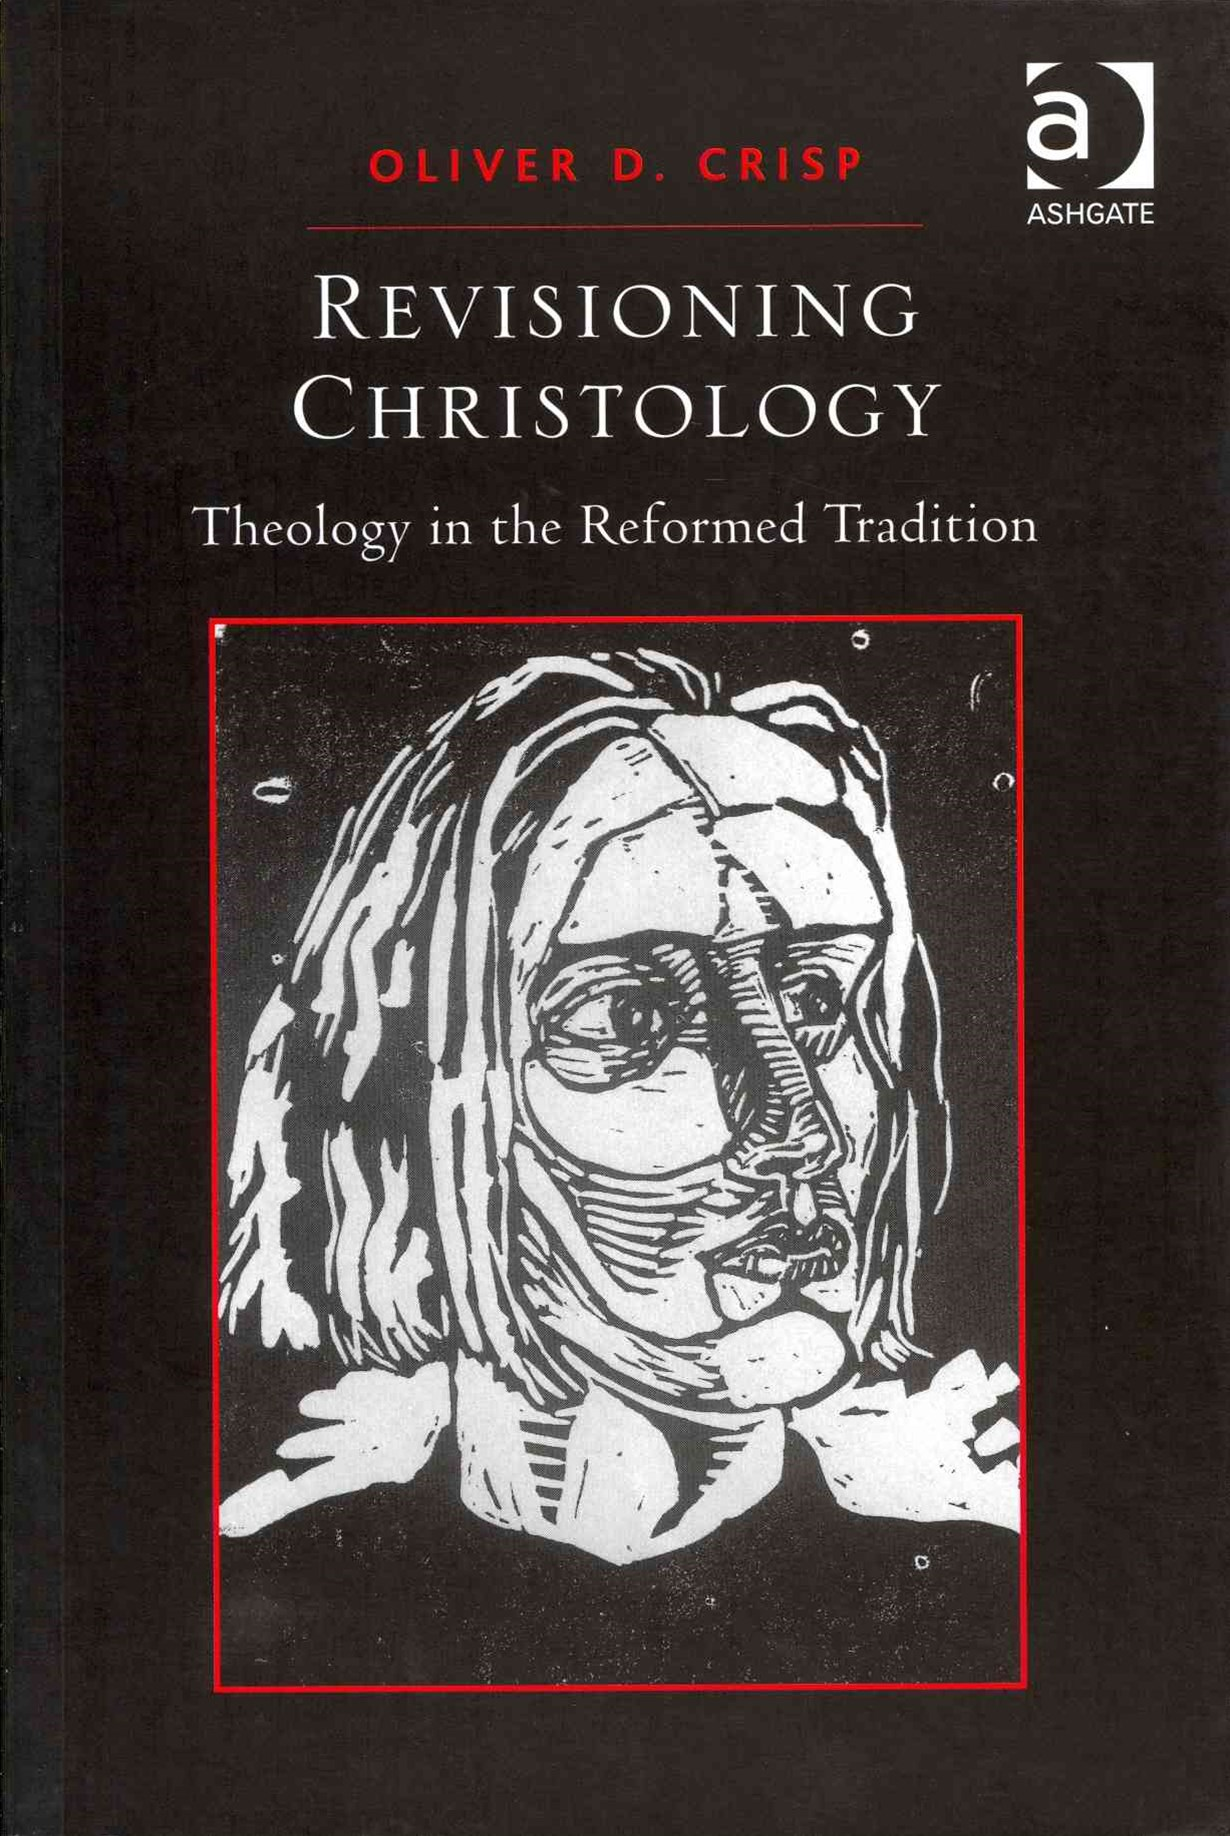 Revisioning Christology